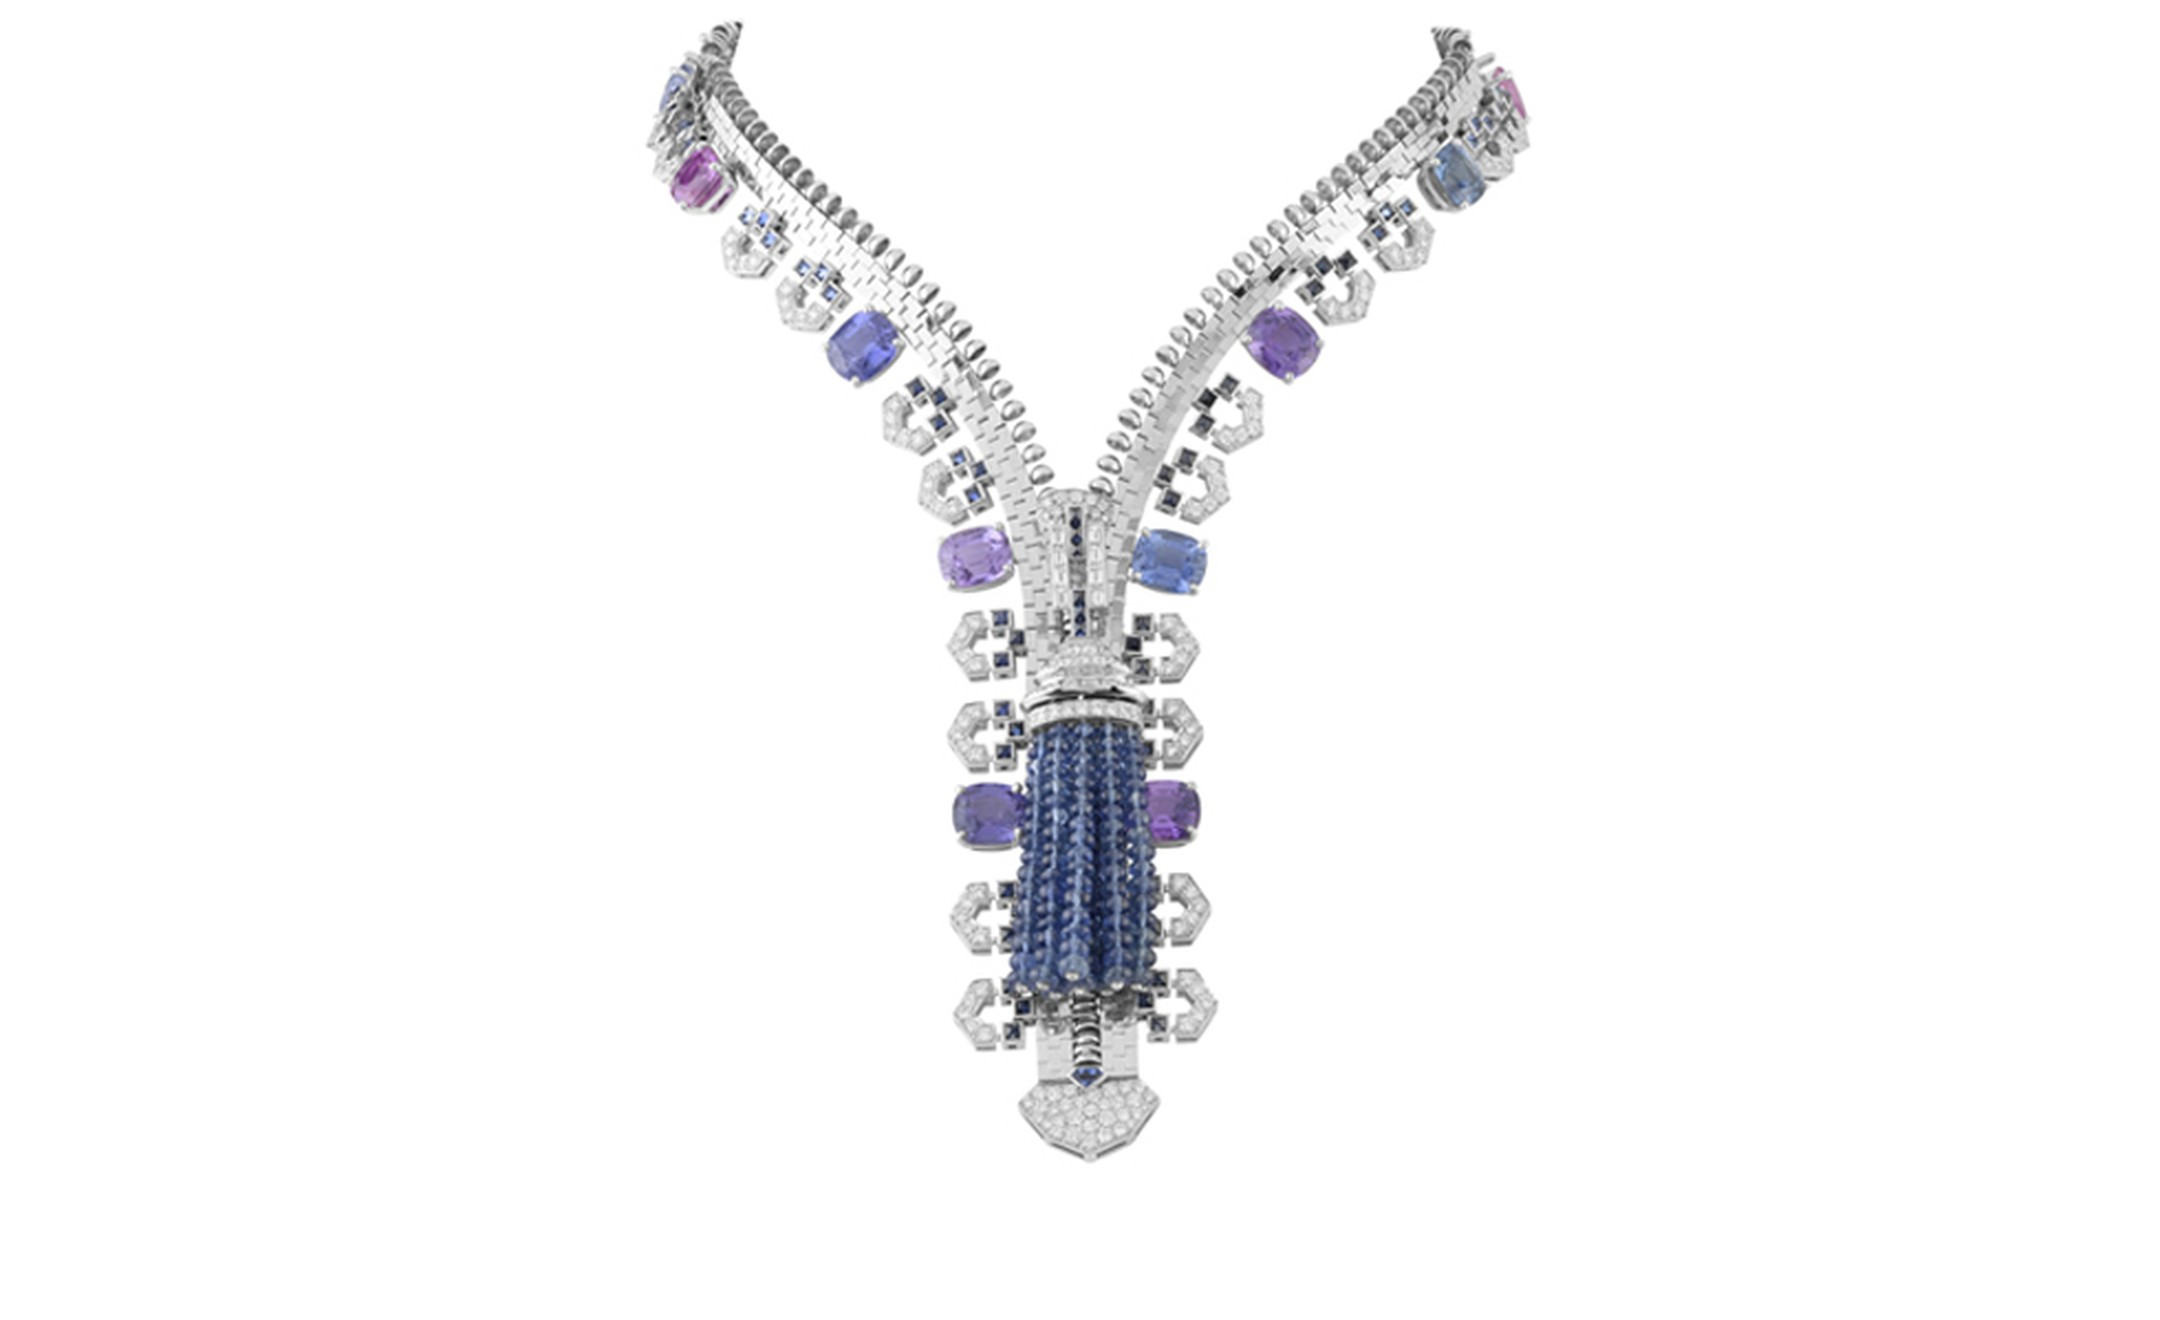 Van Cleef & Arpels Zip necklace in white gold set with diamonds, cushion-cut multicoloured sapphires and sapphires. POA